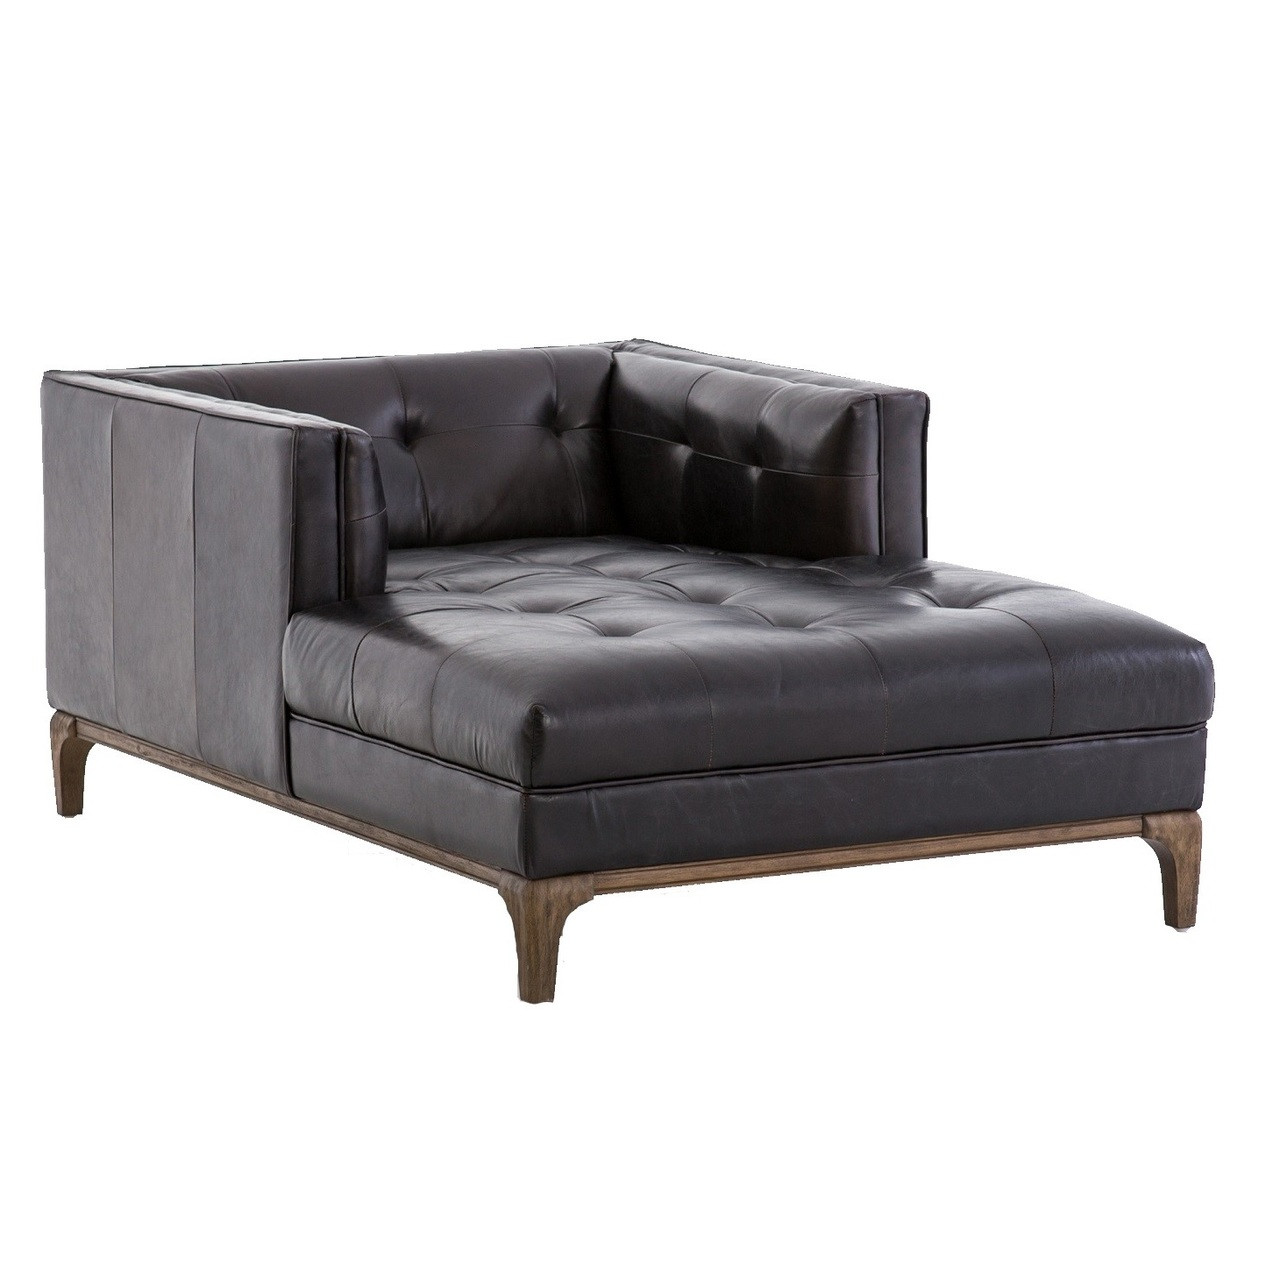 Dylan Mid-Century Modern Black Leather Chaise Lounge